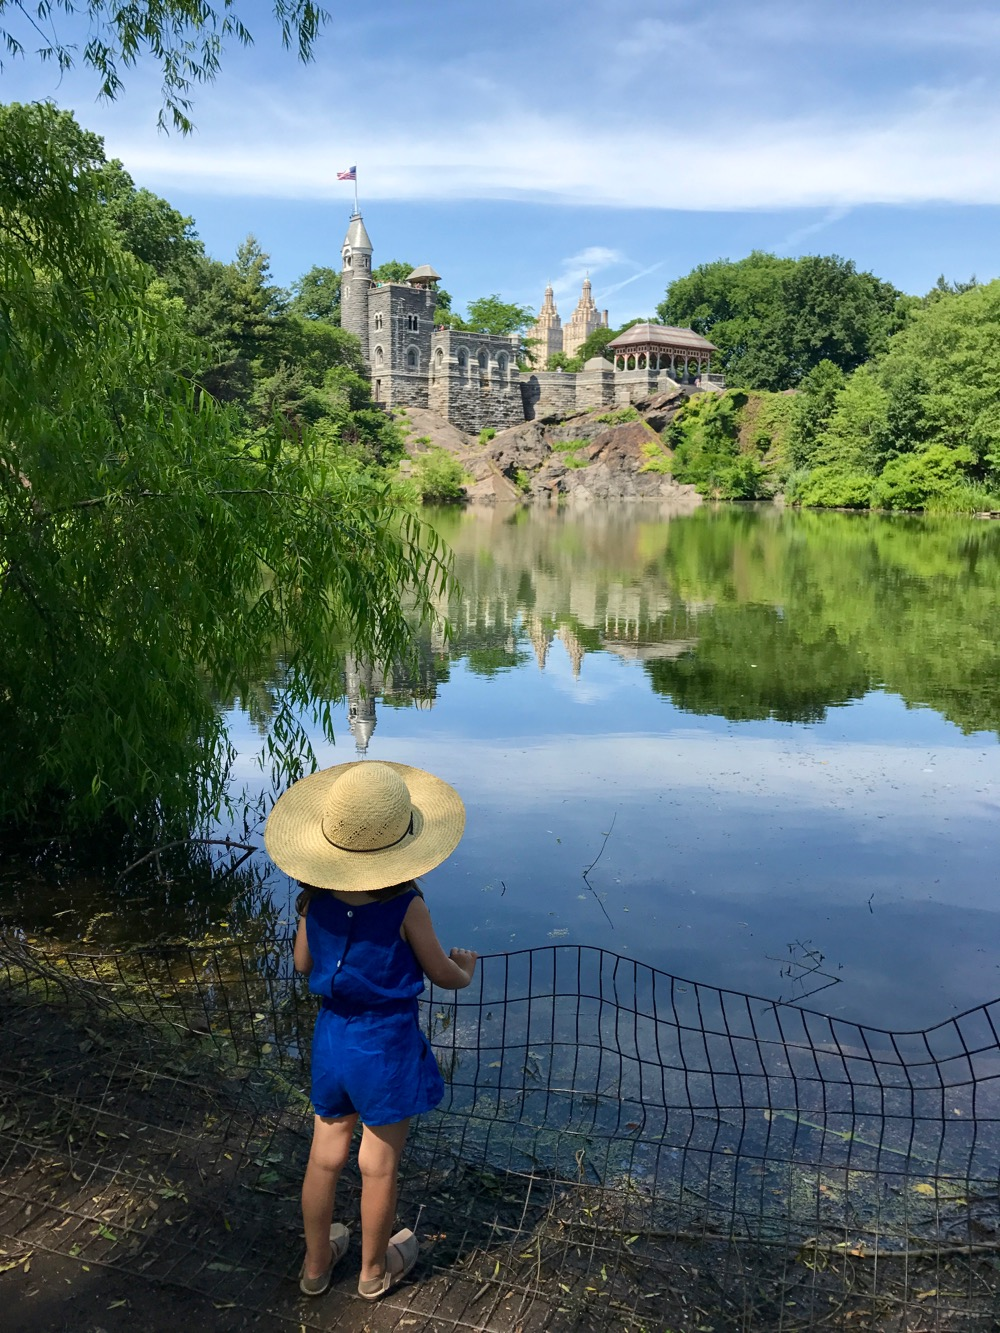 View of Belvedere Castle from the far side of Turtle Pond